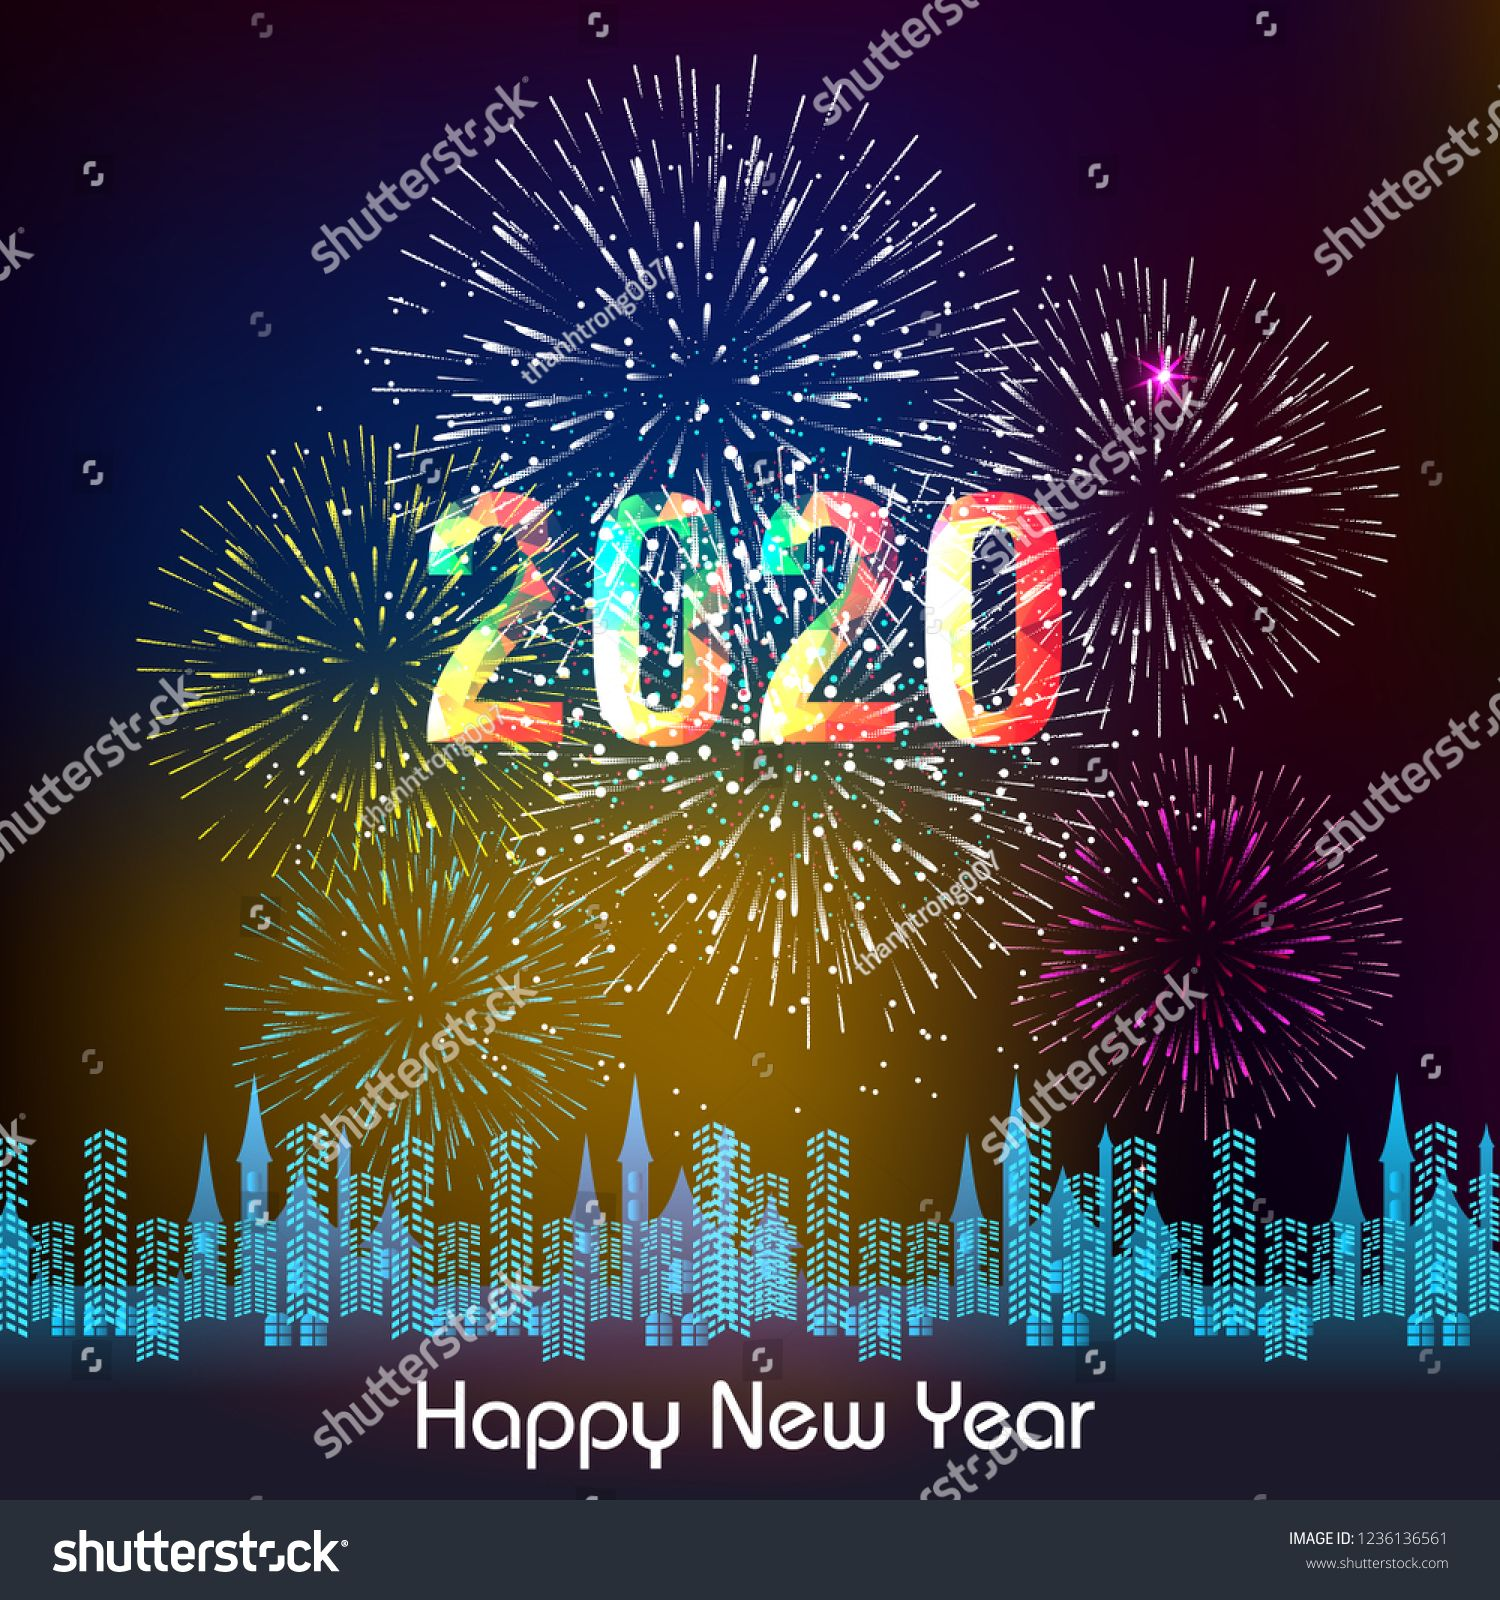 Image vectorielle de stock de Happy New Year 2020